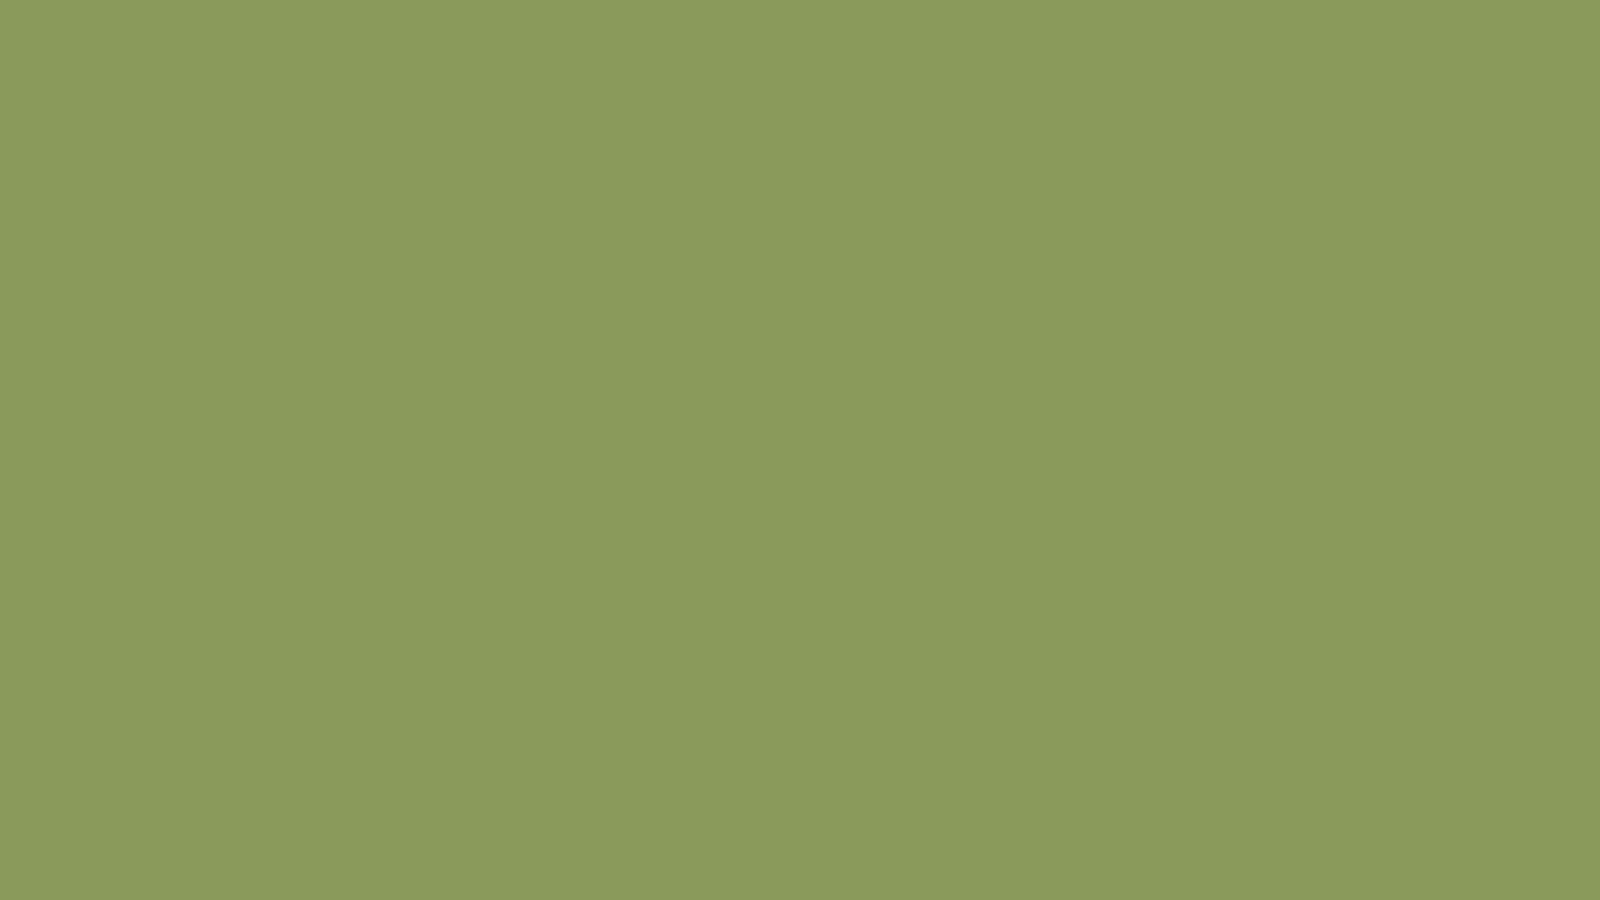 1600x900 Moss Green Solid Color Background